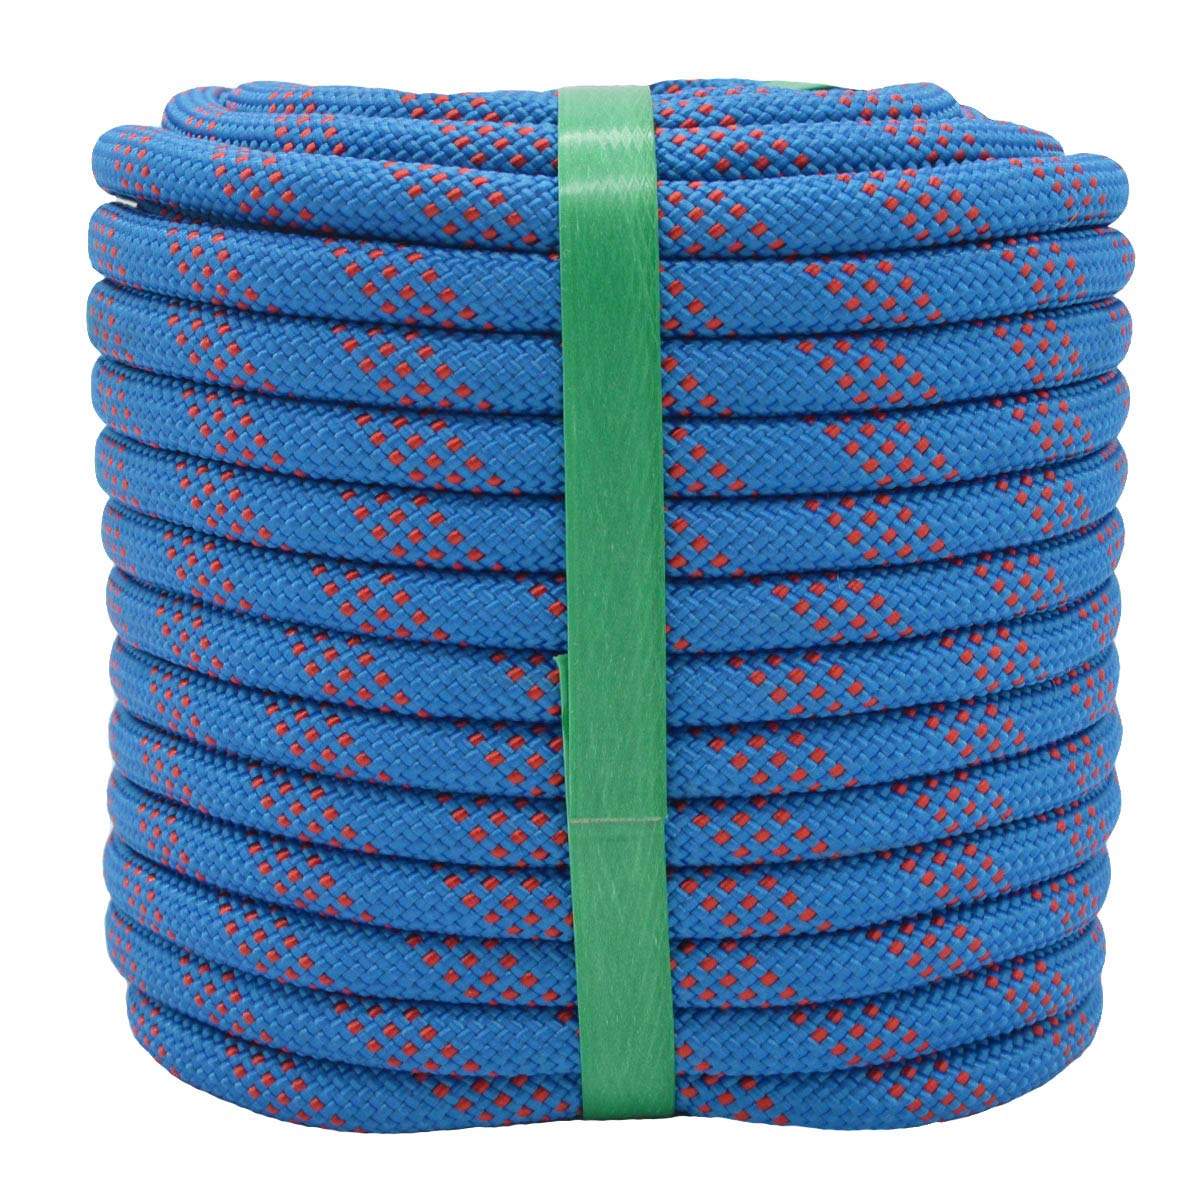 """YUZENET Braided Polyester Arborist Rigging Rope (3/8"""" X 100') Strong Pulling Rope for Climbing Sailing Camping Swings,Blue/Red"""